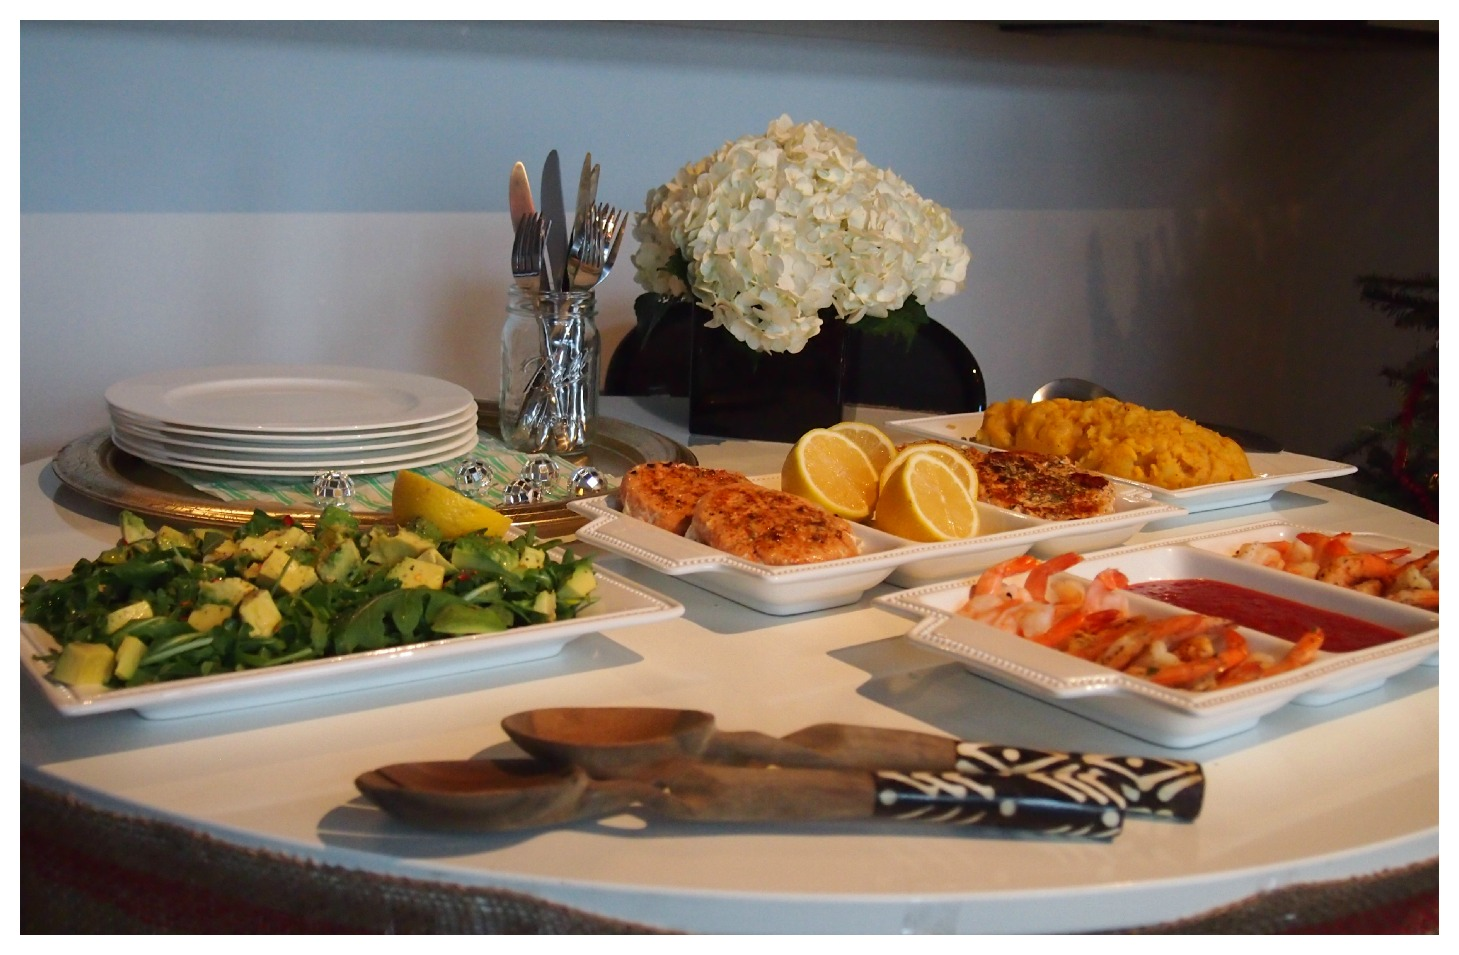 Nomad Luxuries; healthy and colorful food spread for St. Nicholas celebration.